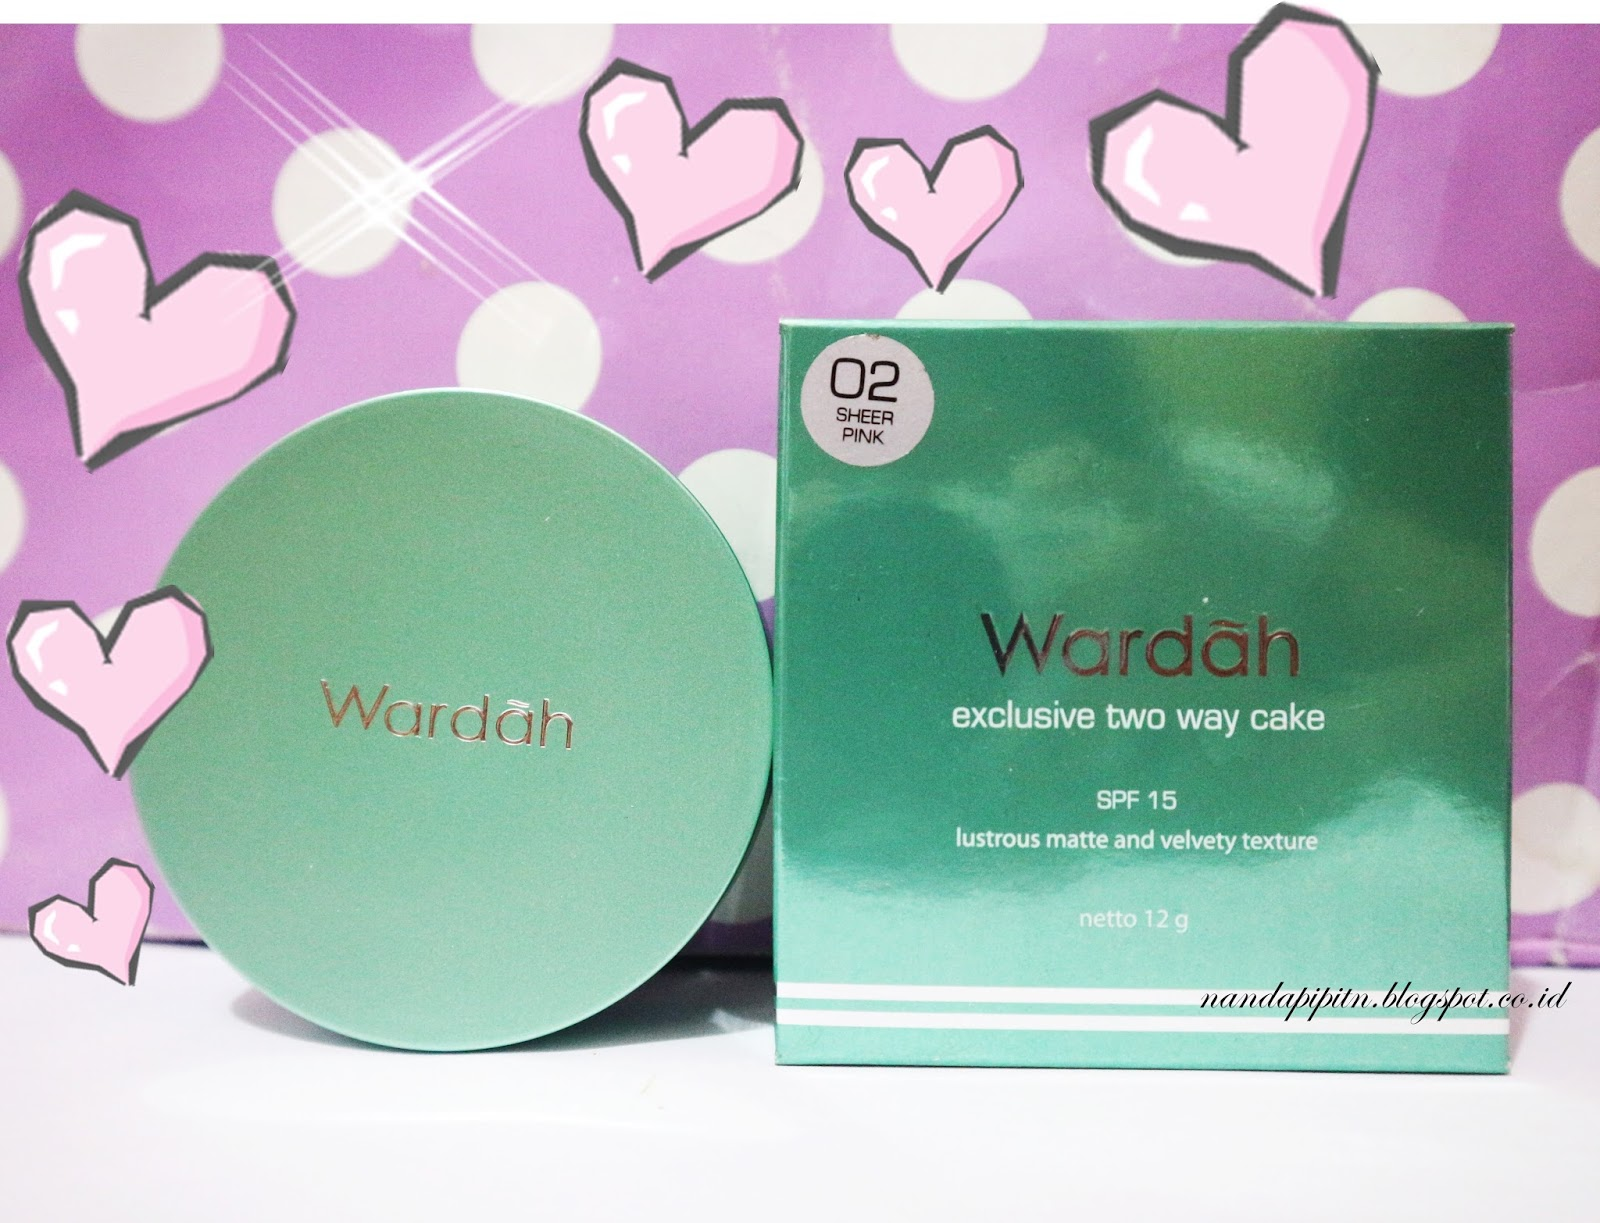 REVIEW Bedak WARDAH Exclusive Two Way Cake No 02 Sheer Pink